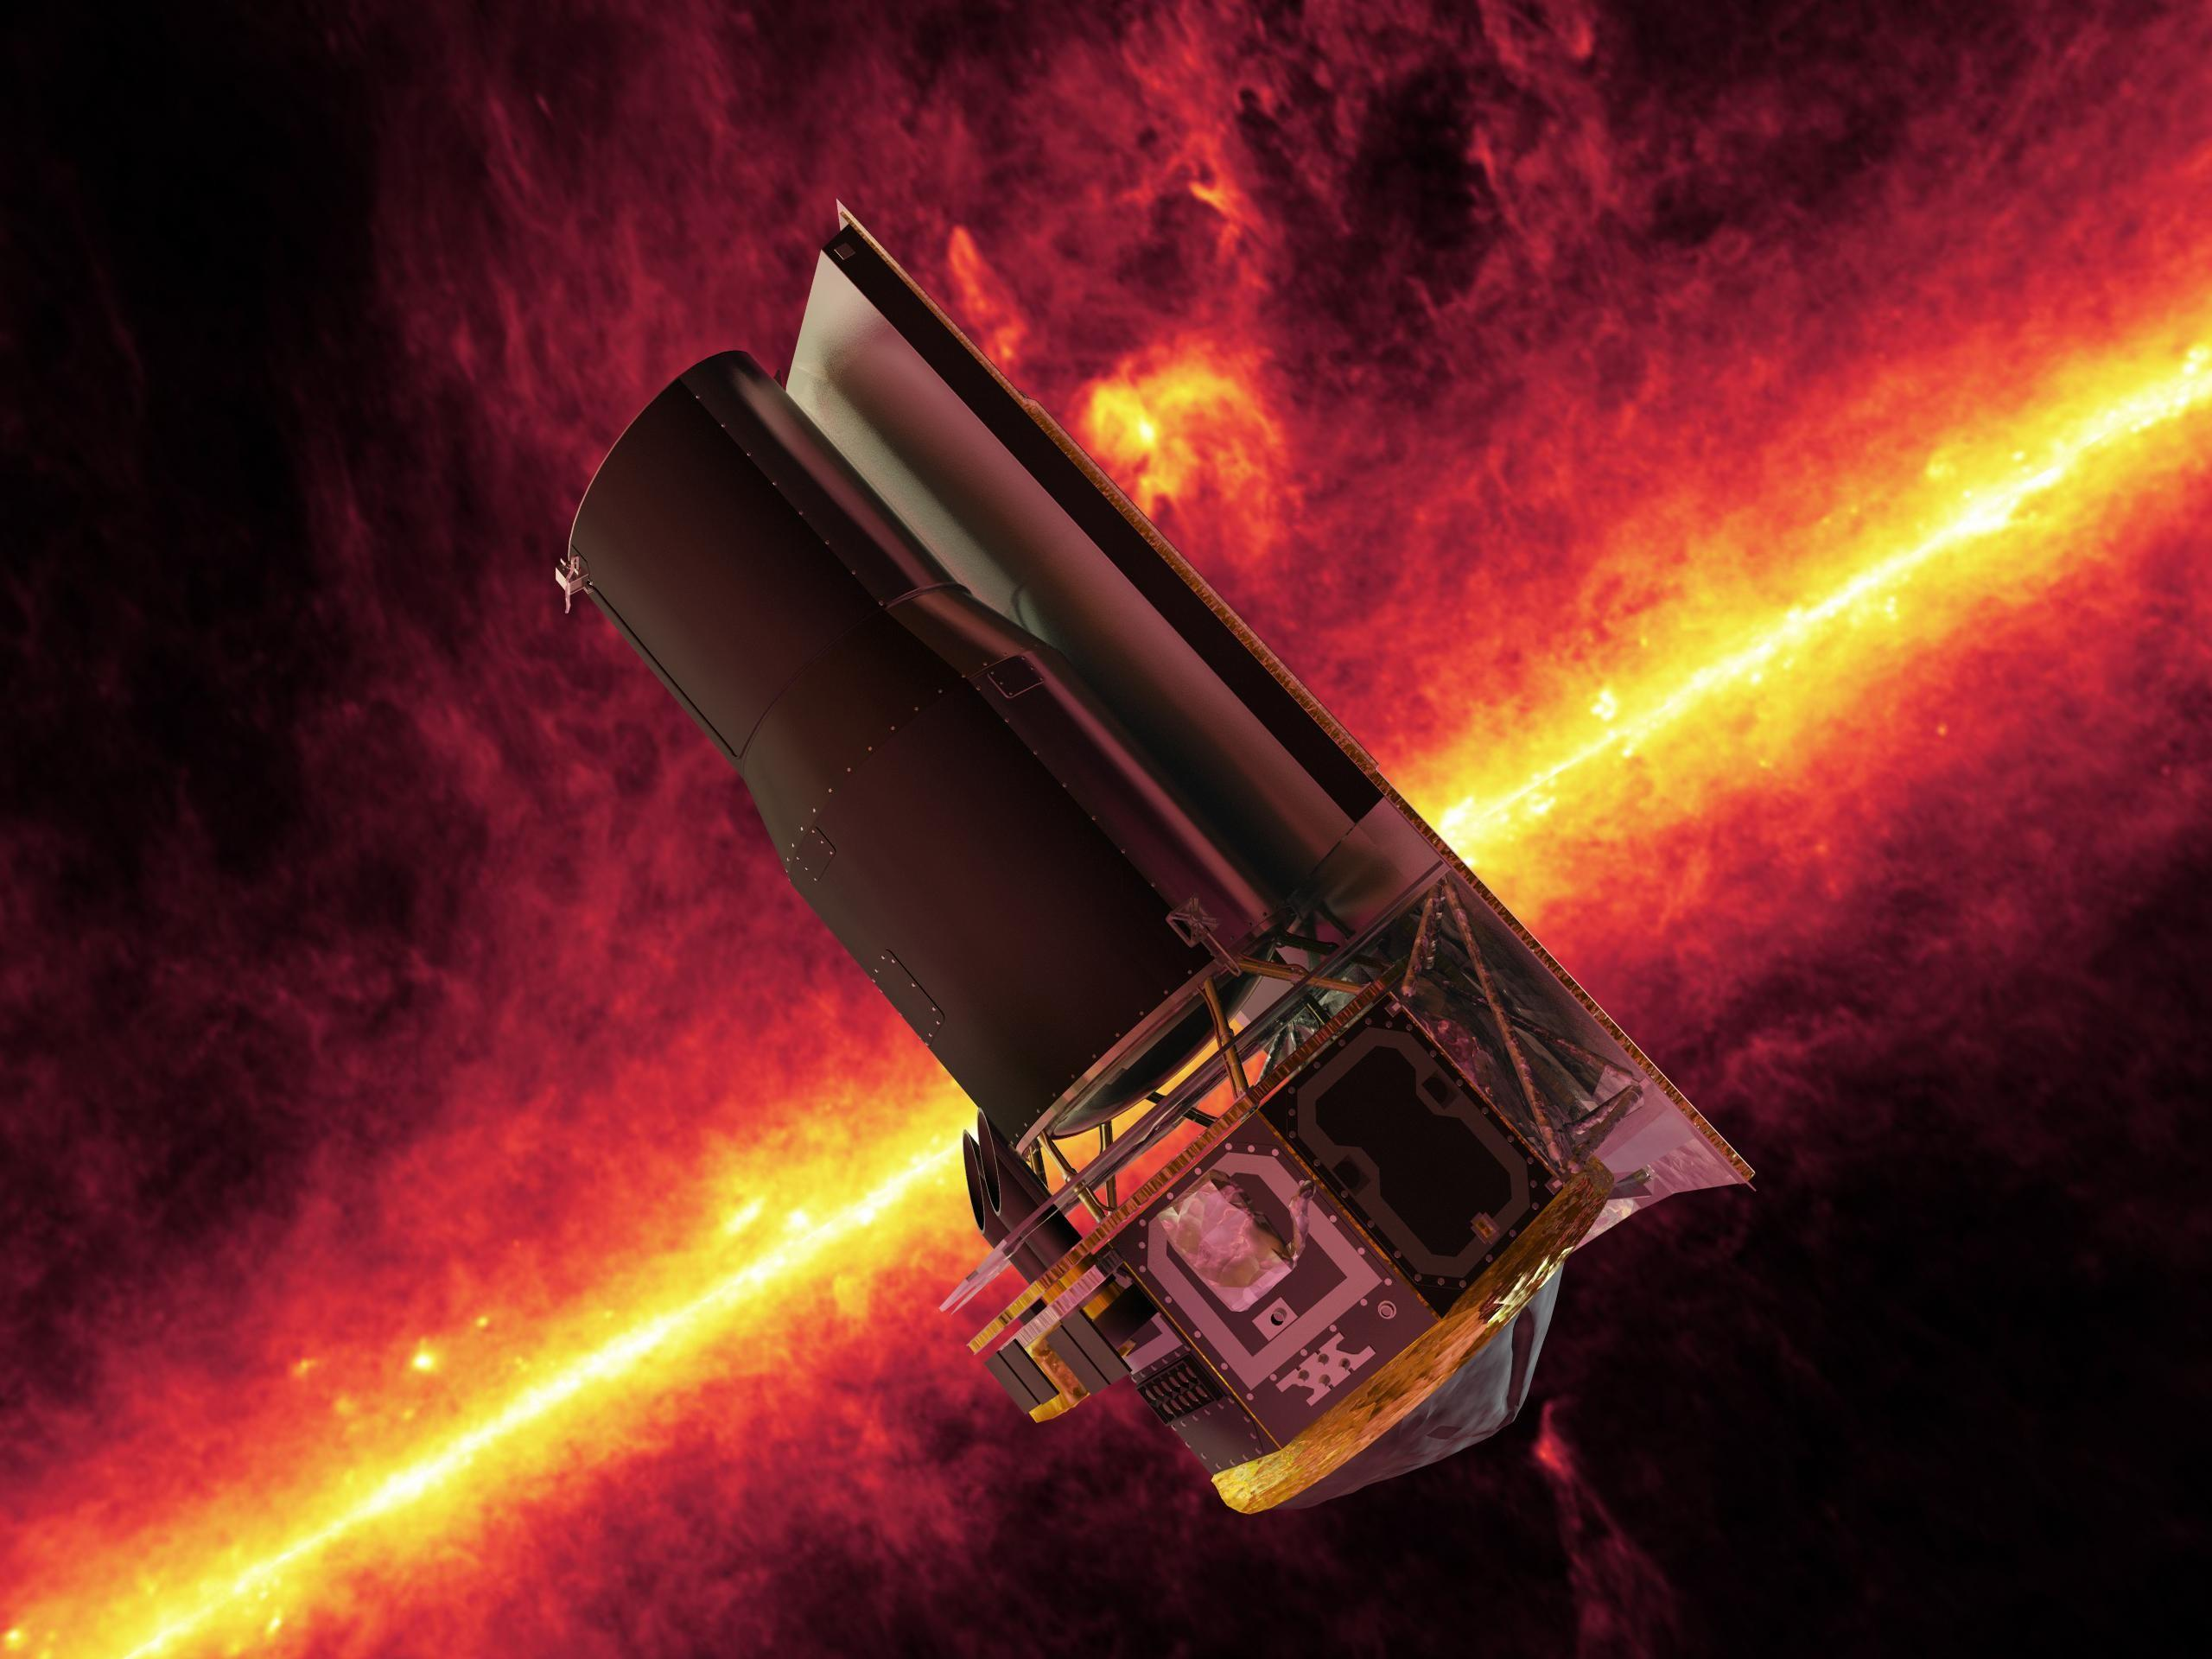 Spitzer Space Telescope prepares for the final phase of its mission